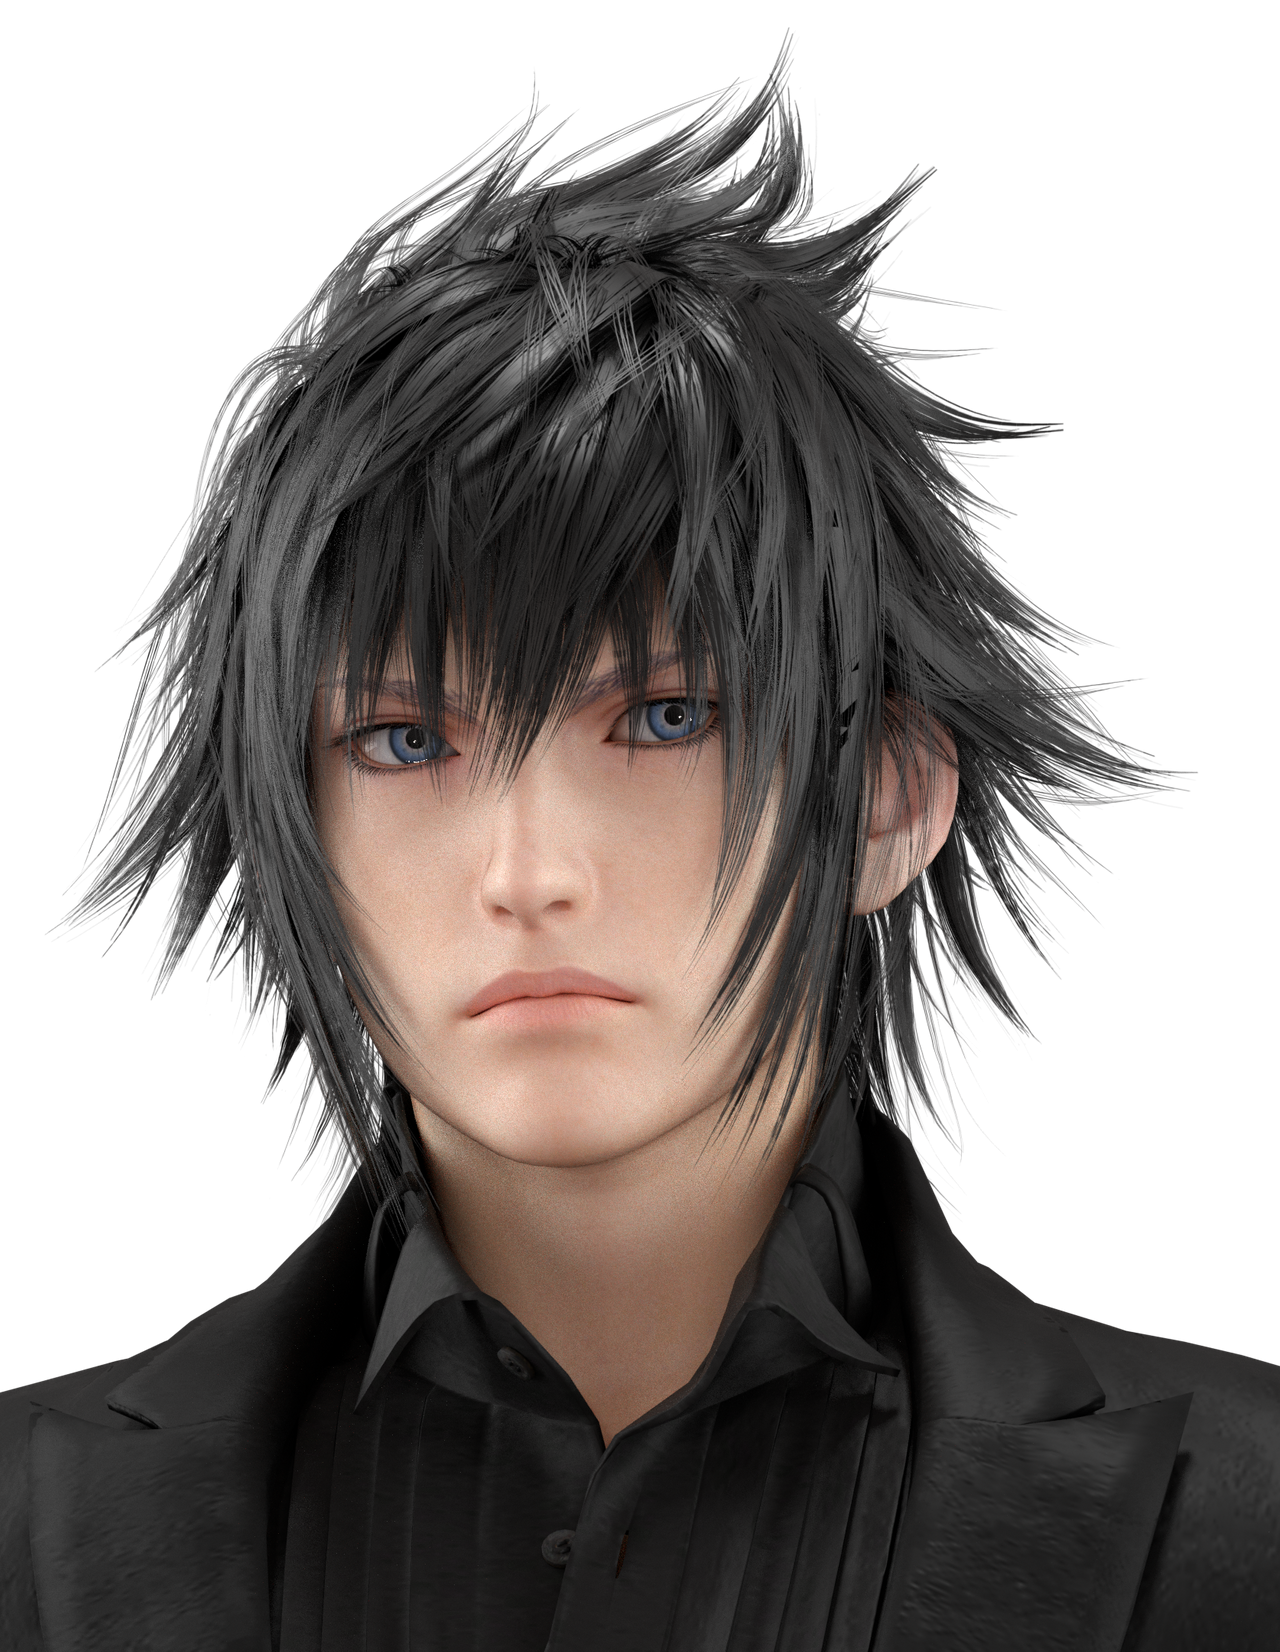 Pin By Narry Abrocket On Final Fantasy In 2021 Final Fantasy Final Fantasy Xv Noctis Final Fantasy